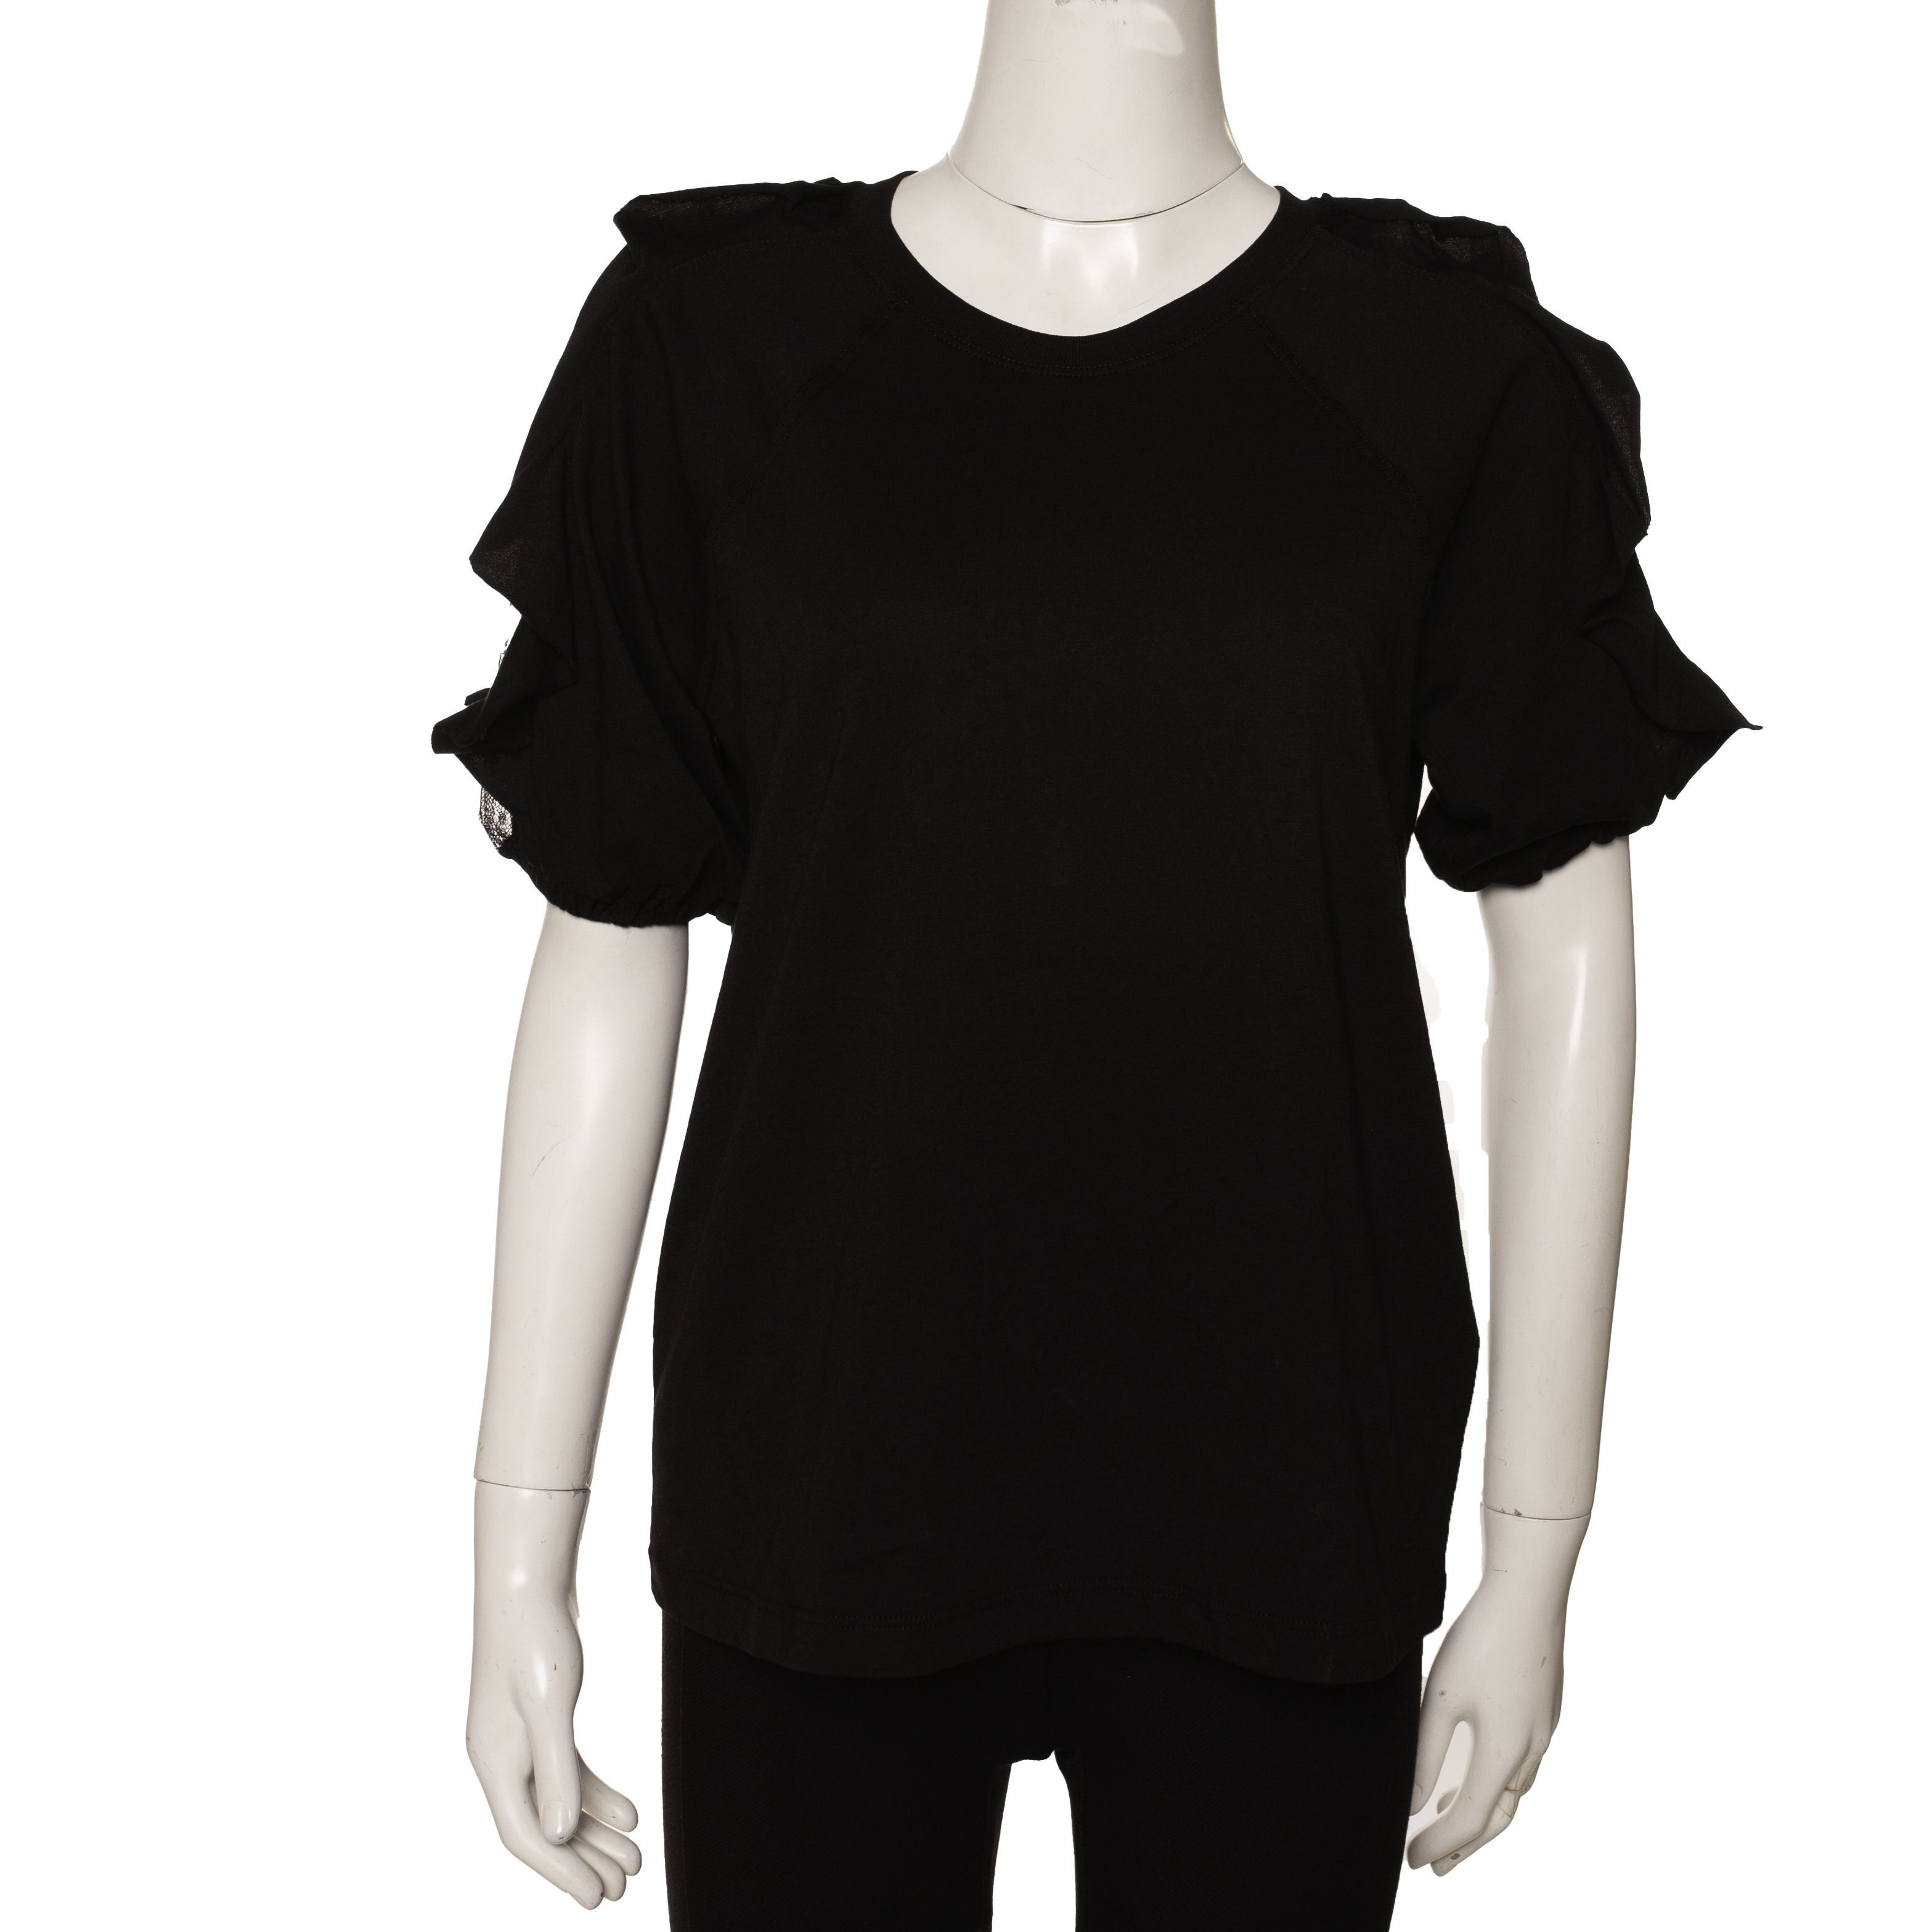 RED Valentino Black Cotton Ruffled Sleeve Tulle Insert T-Shirt Size M